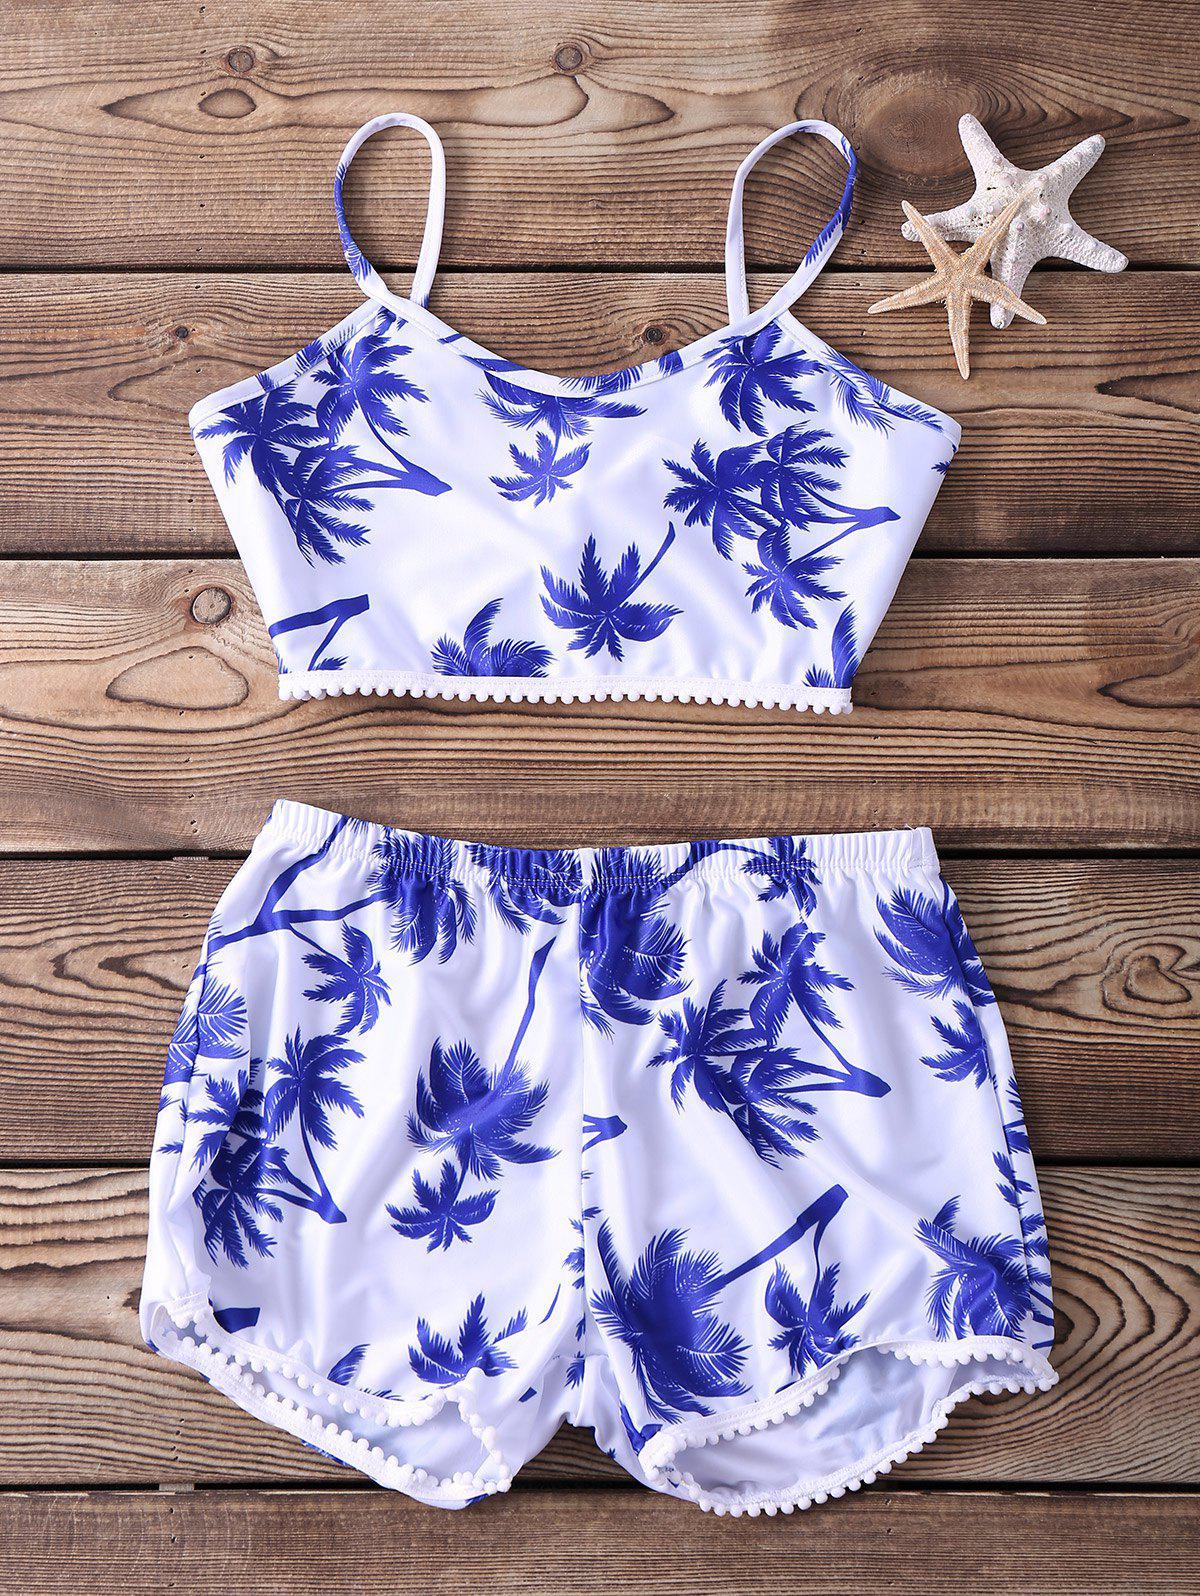 Stylish Spaghetti Strap Two-Piece Printed Women's Swimsuit - BLUE/WHITE L